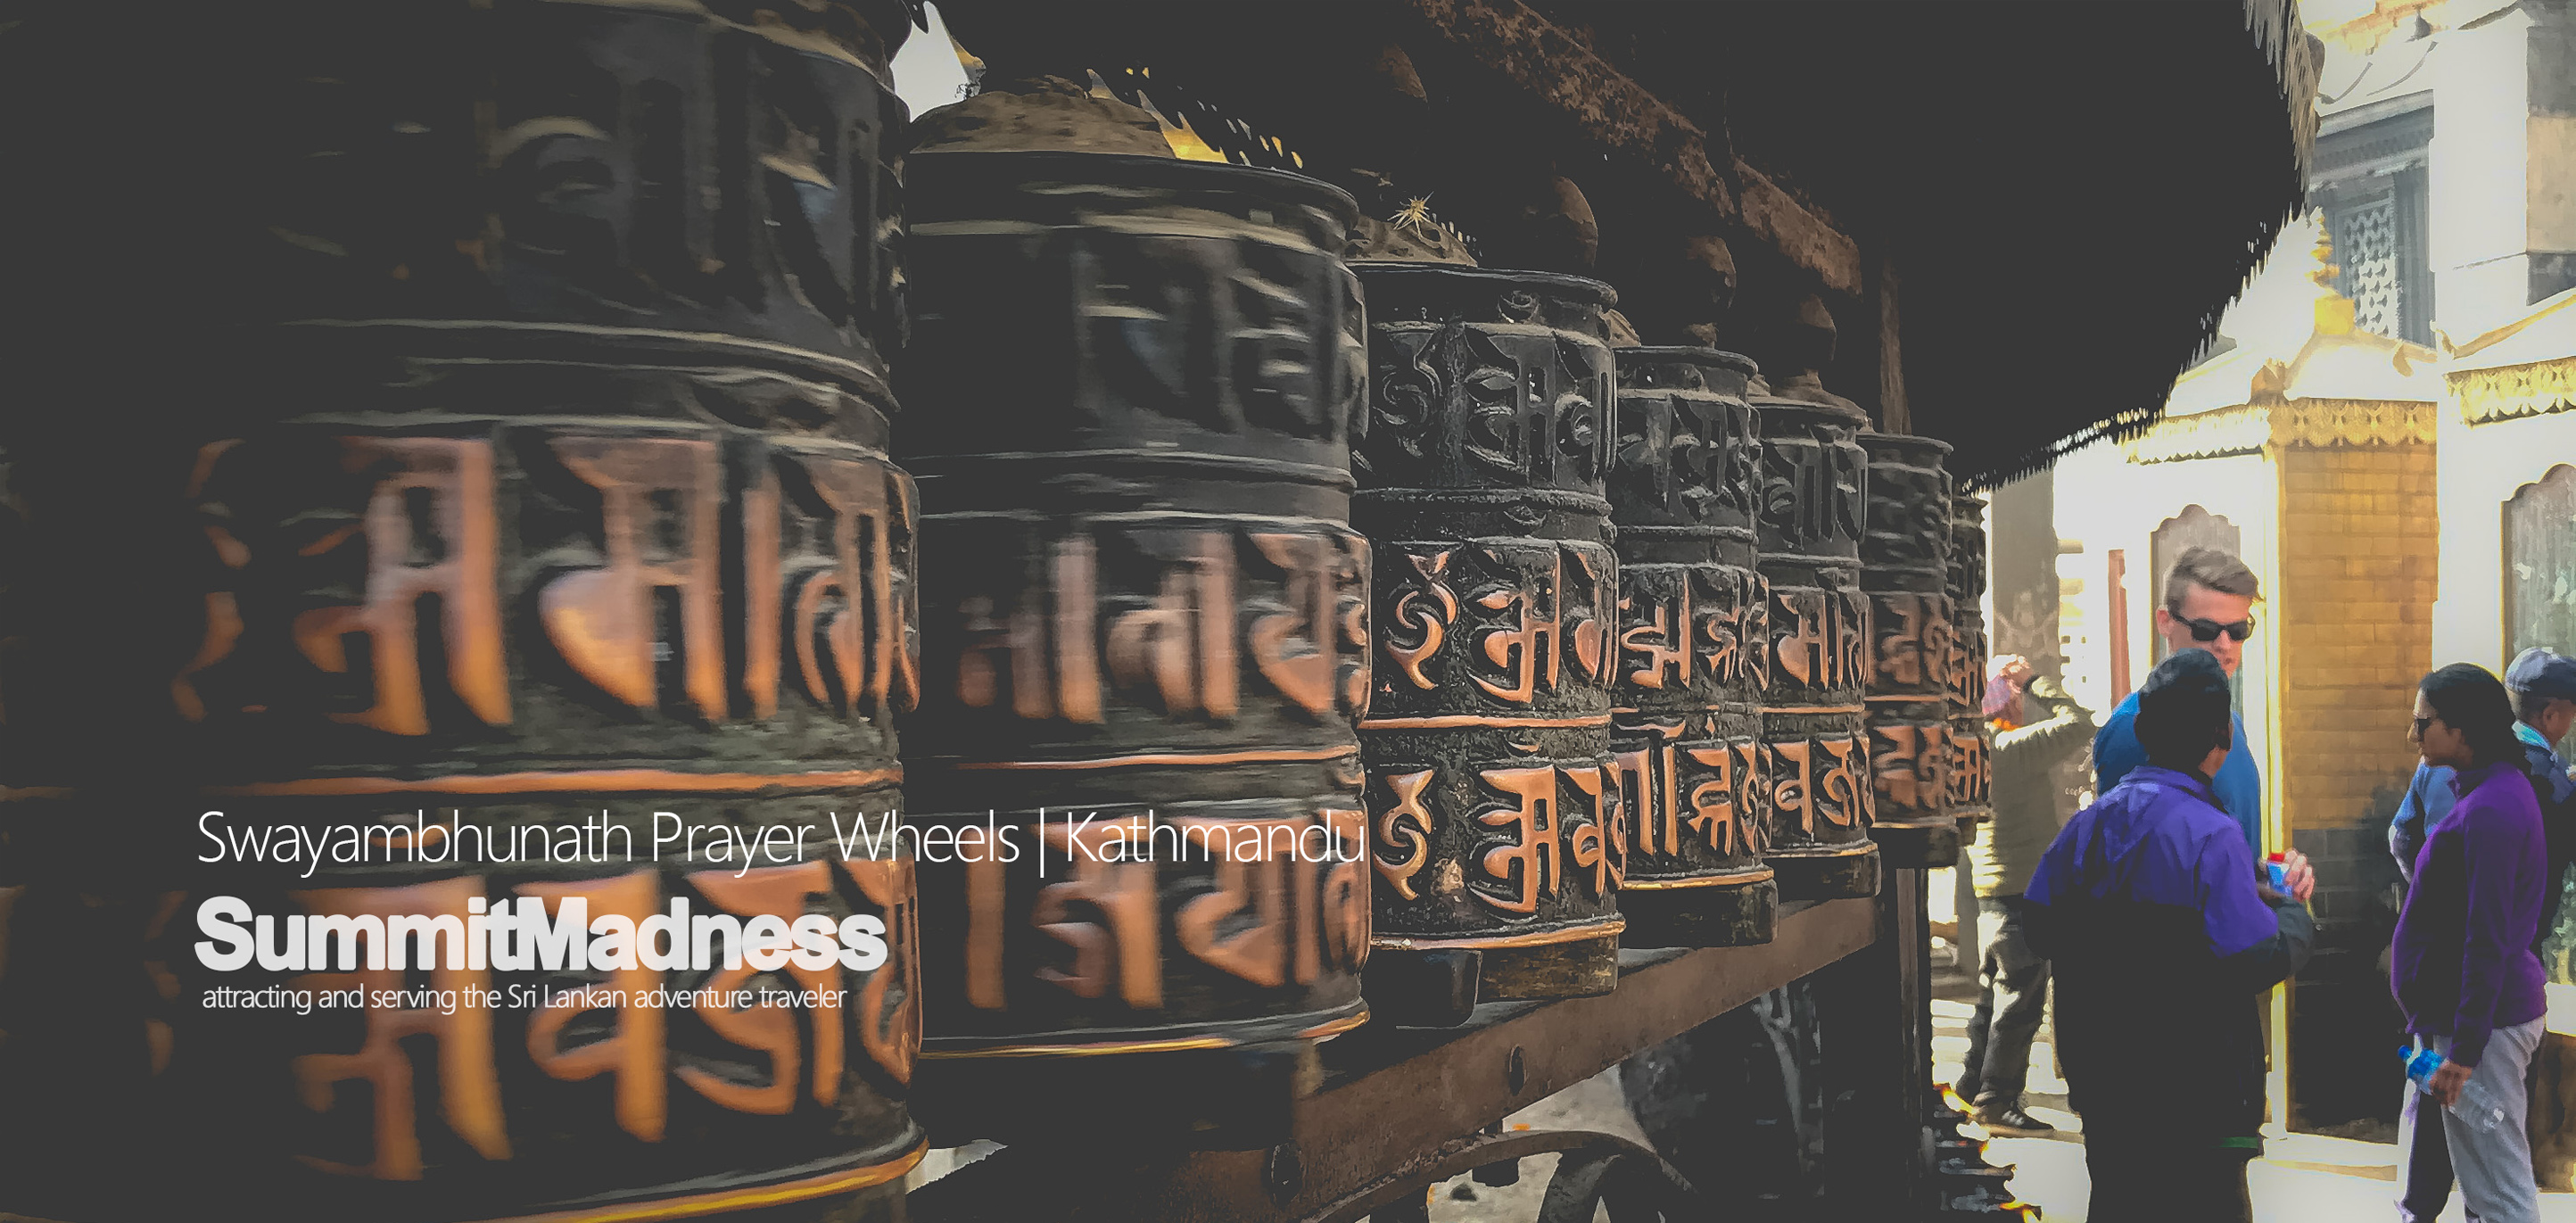 Prayer wheels - Swayambhunath